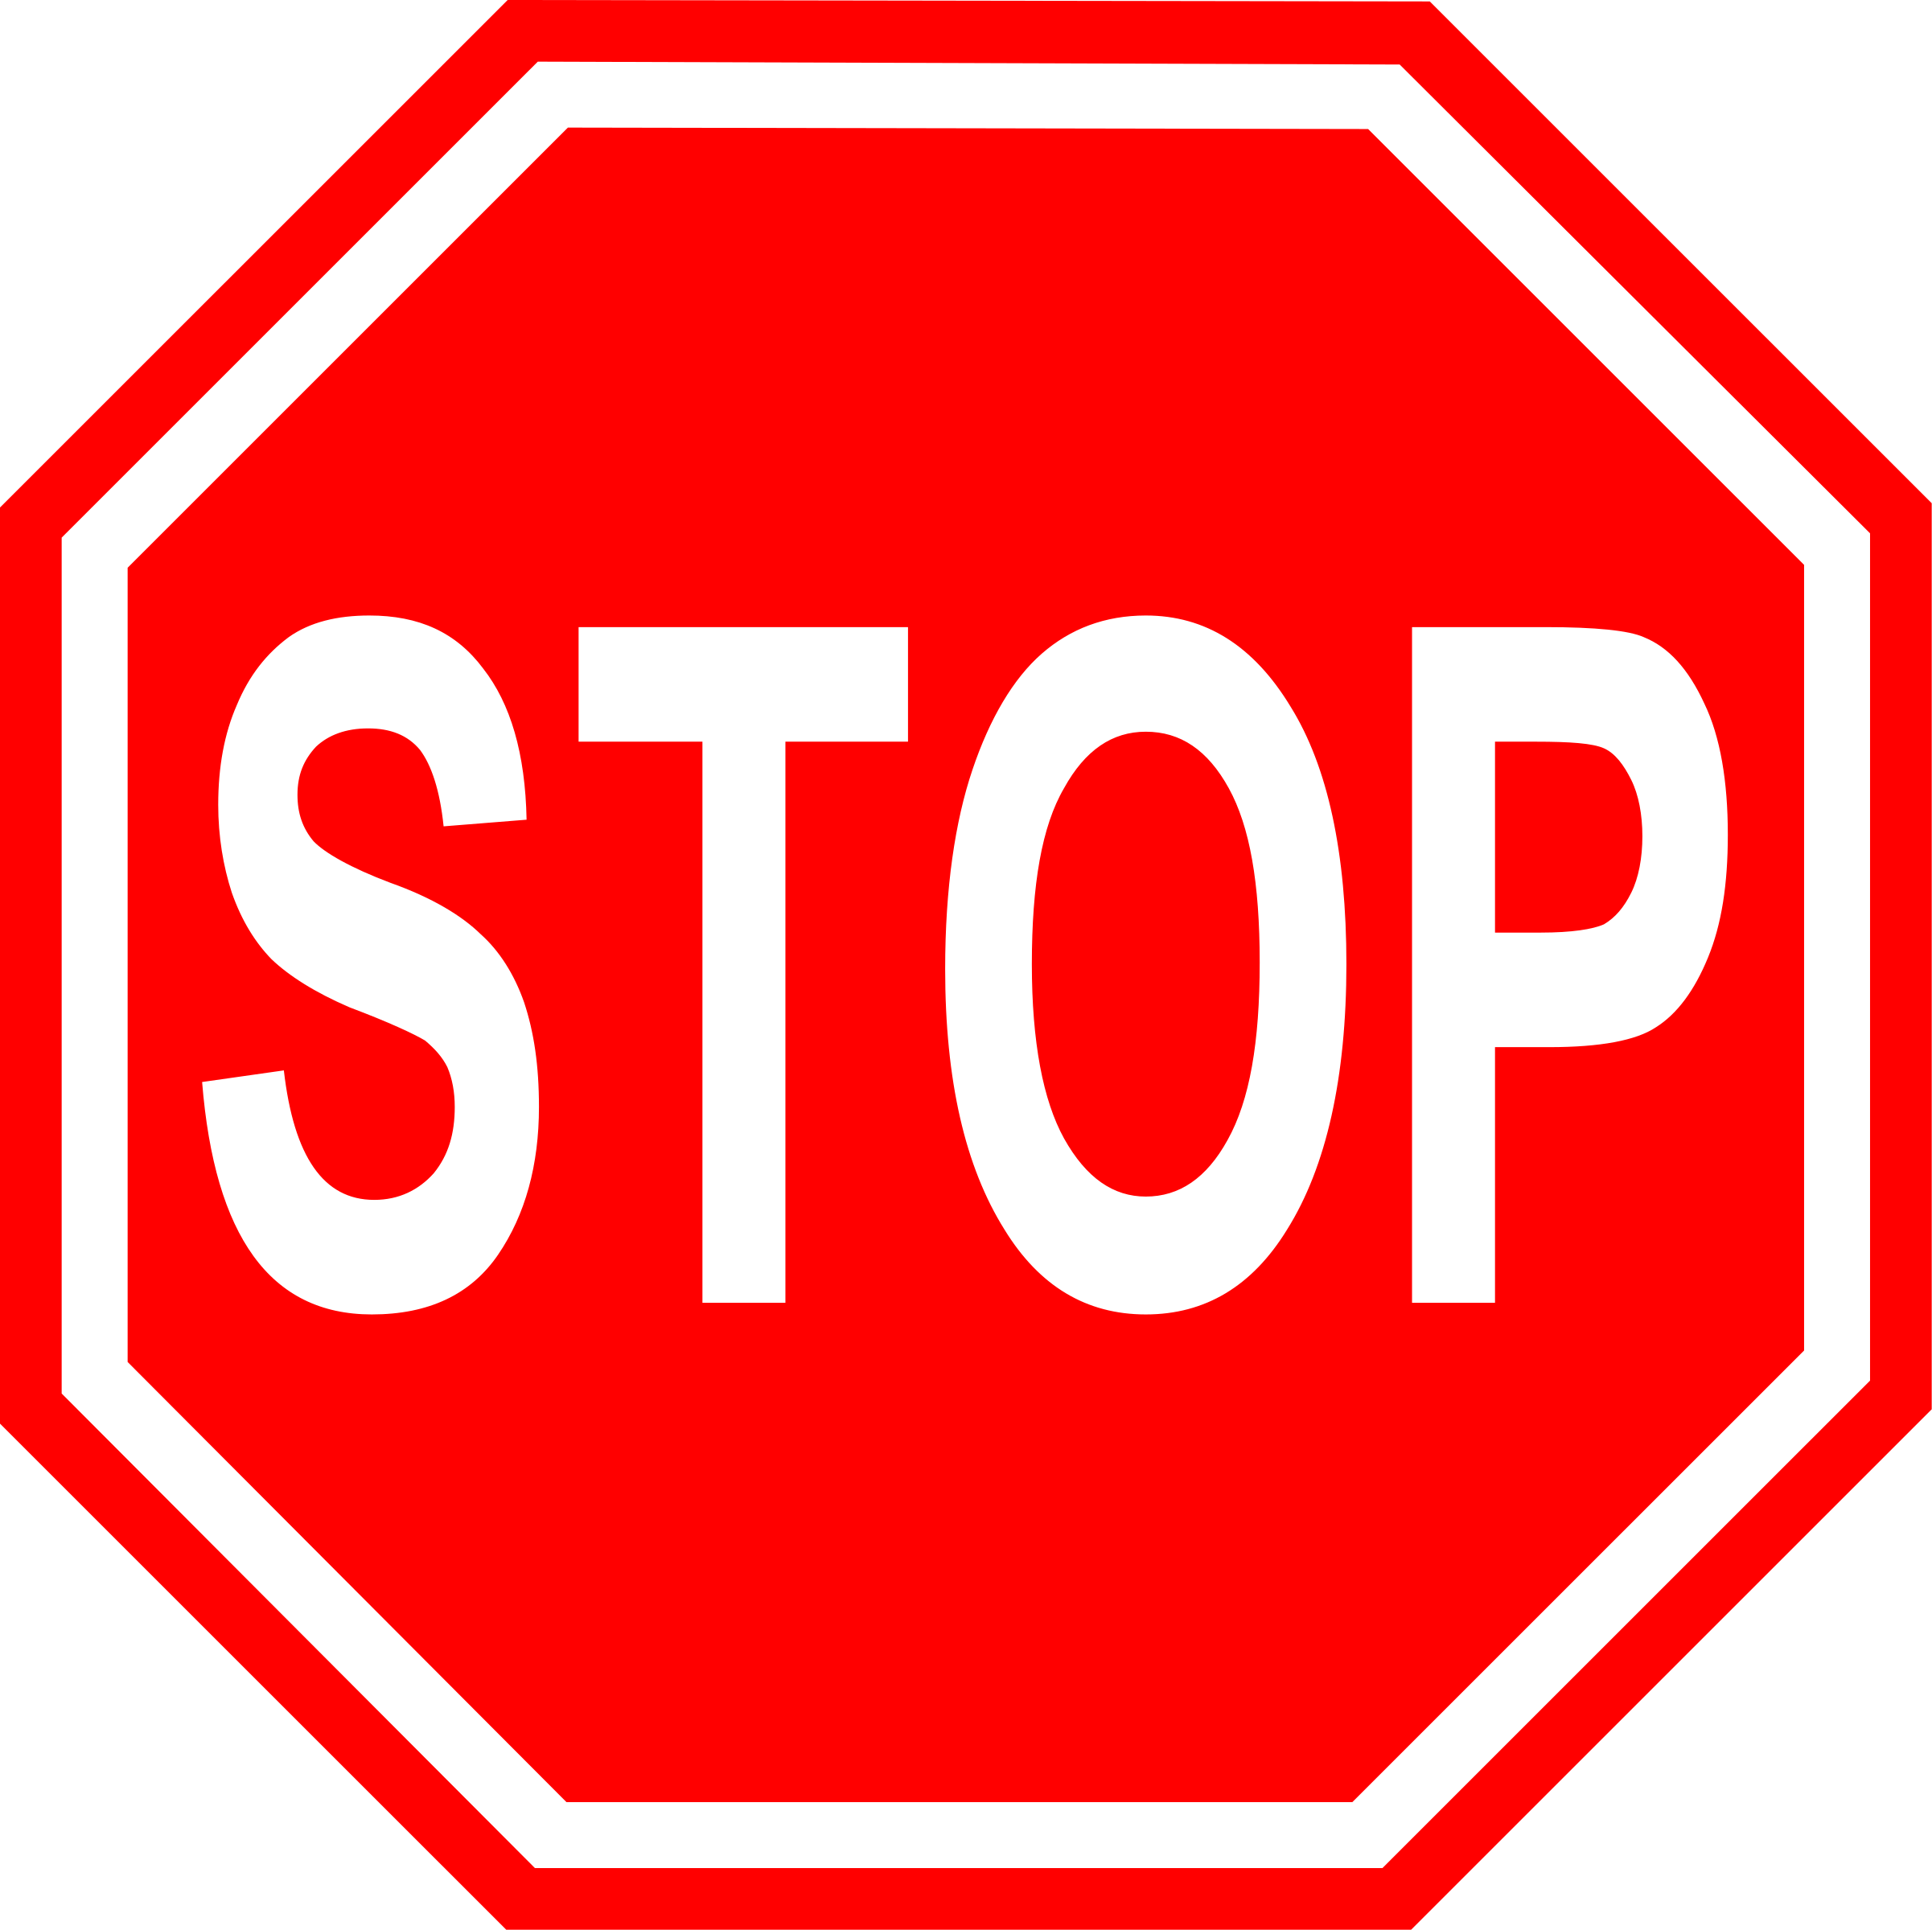 Watch in addition File Traffic light at megasection likewise Controlled Intersections furthermore The Contentadvertising Intersection 18151 further Warrants And Justifications For Traffic Signs. on 4 way stop sign intersection